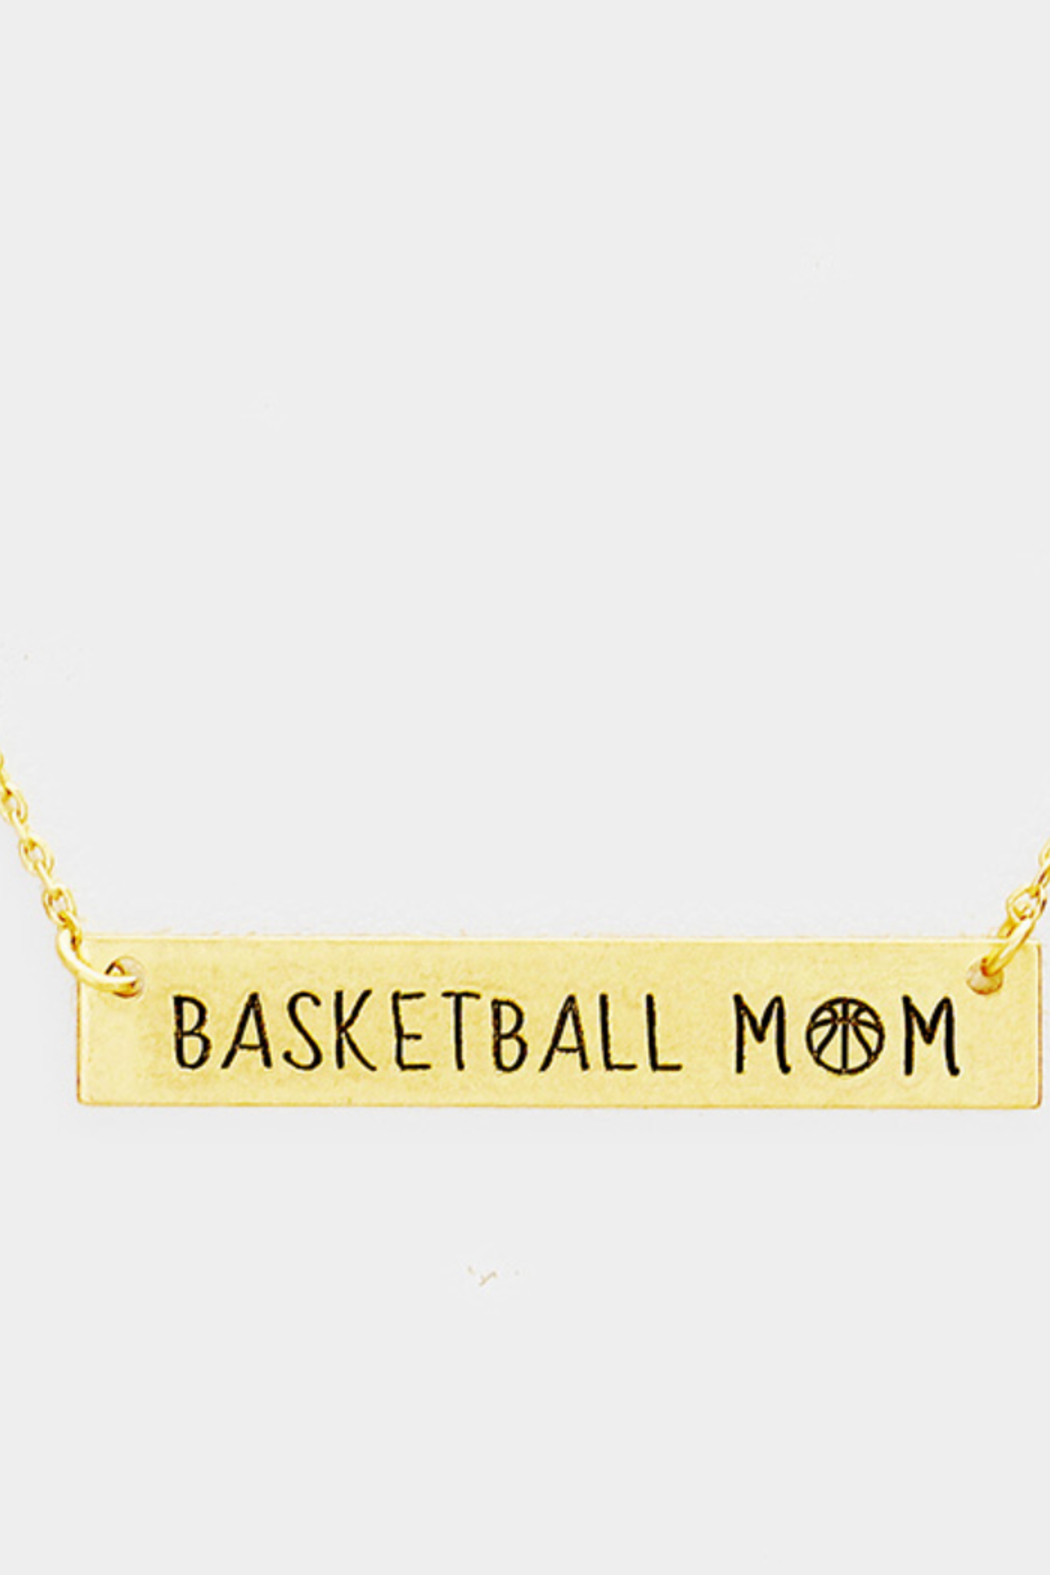 Lyn-Maree's  Basketball Mom - Main Image